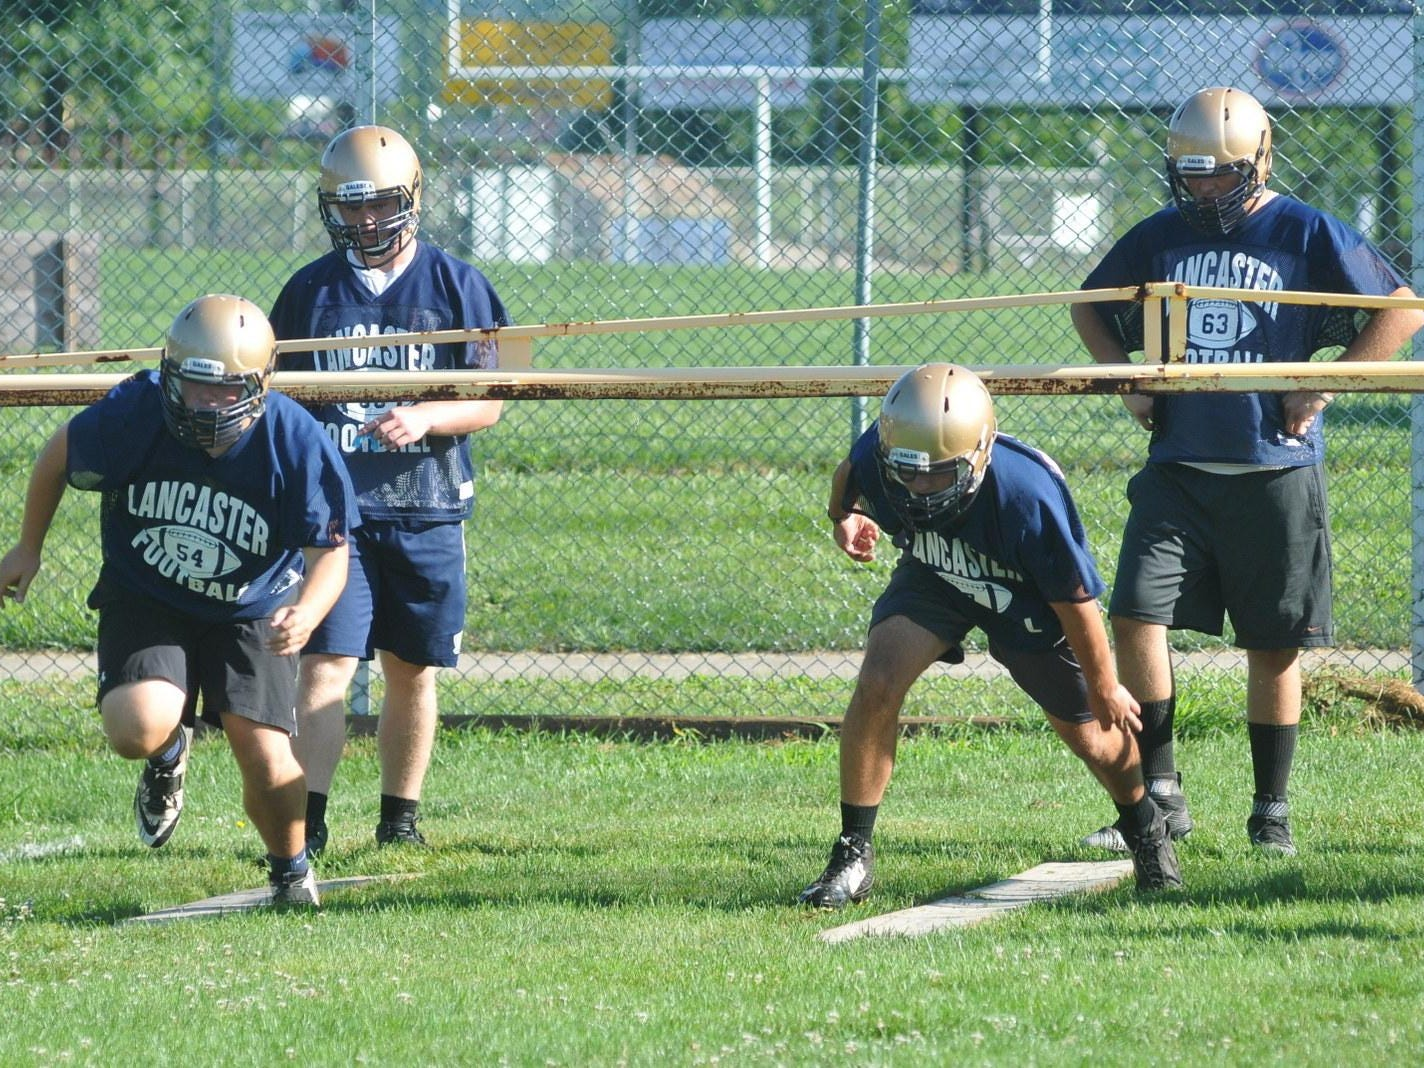 The Lancaster football team officially began practice on Saturday in preparation for the 2015 season.